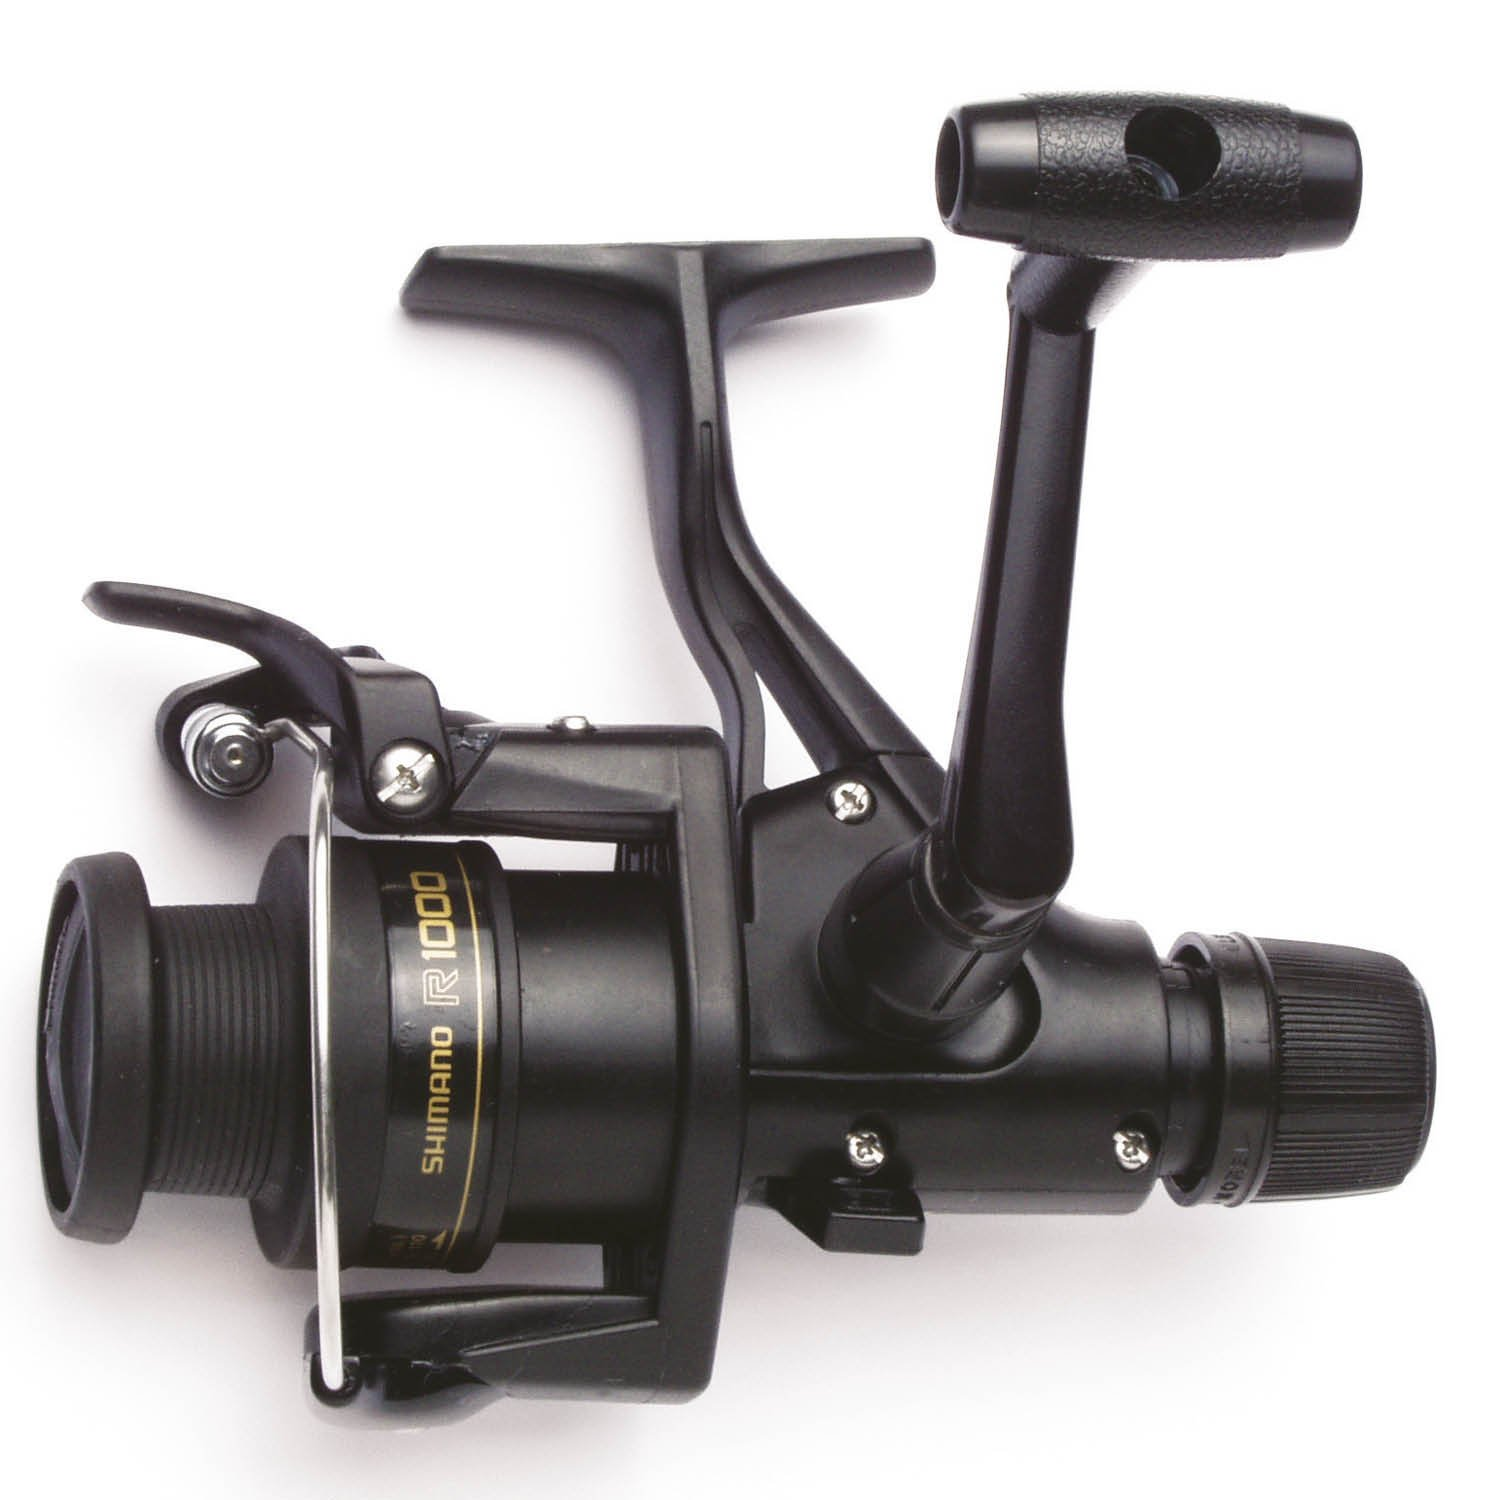 SHIMANO IX 1000 Rear Drag